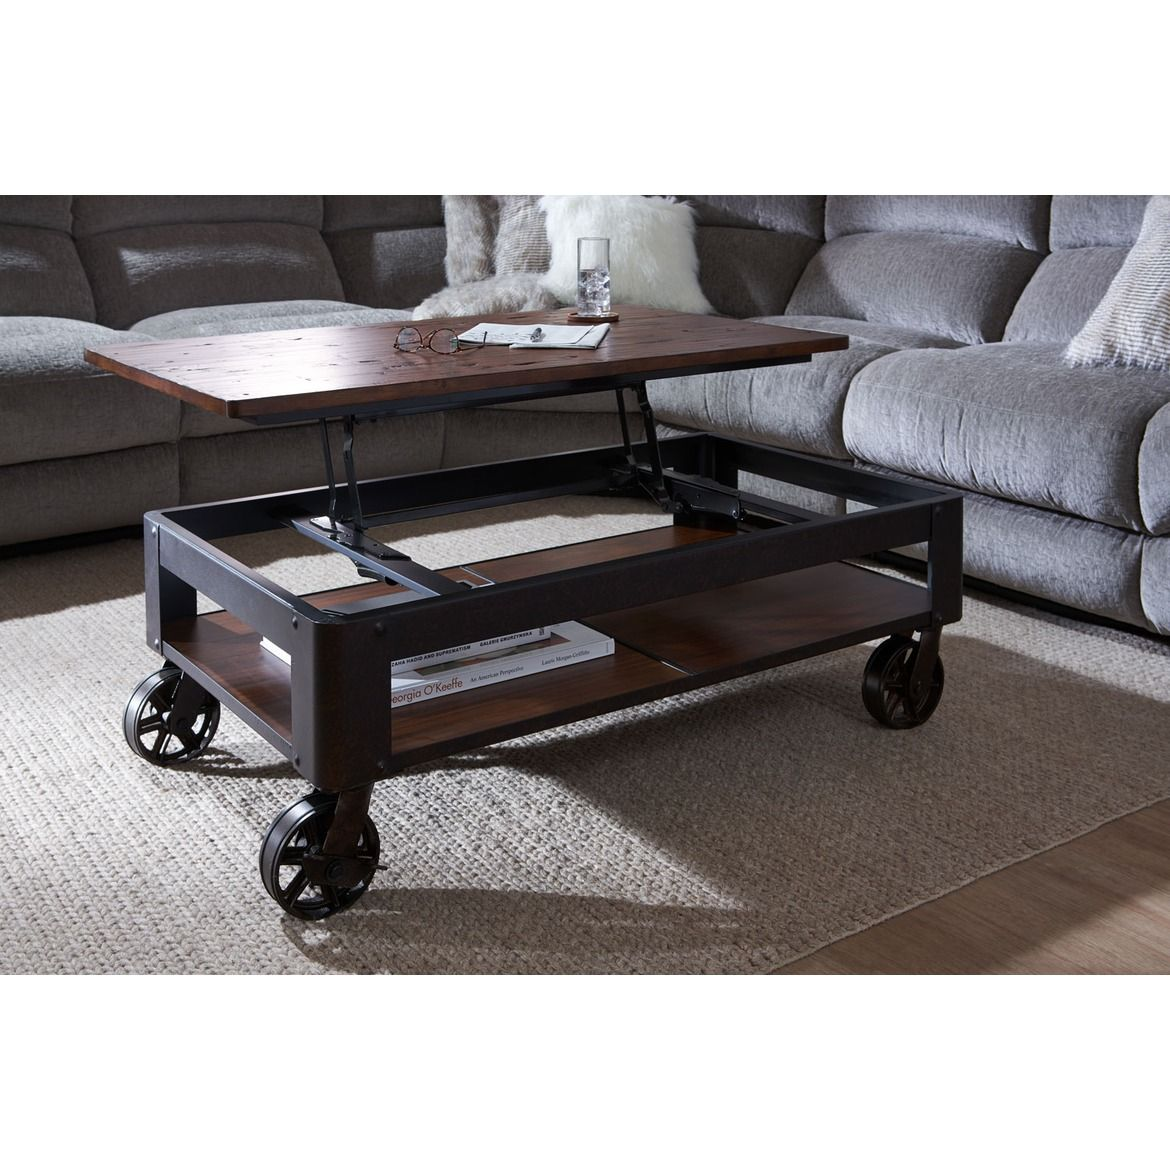 Shortline Lift Top Coffee Table in 2020 Value city